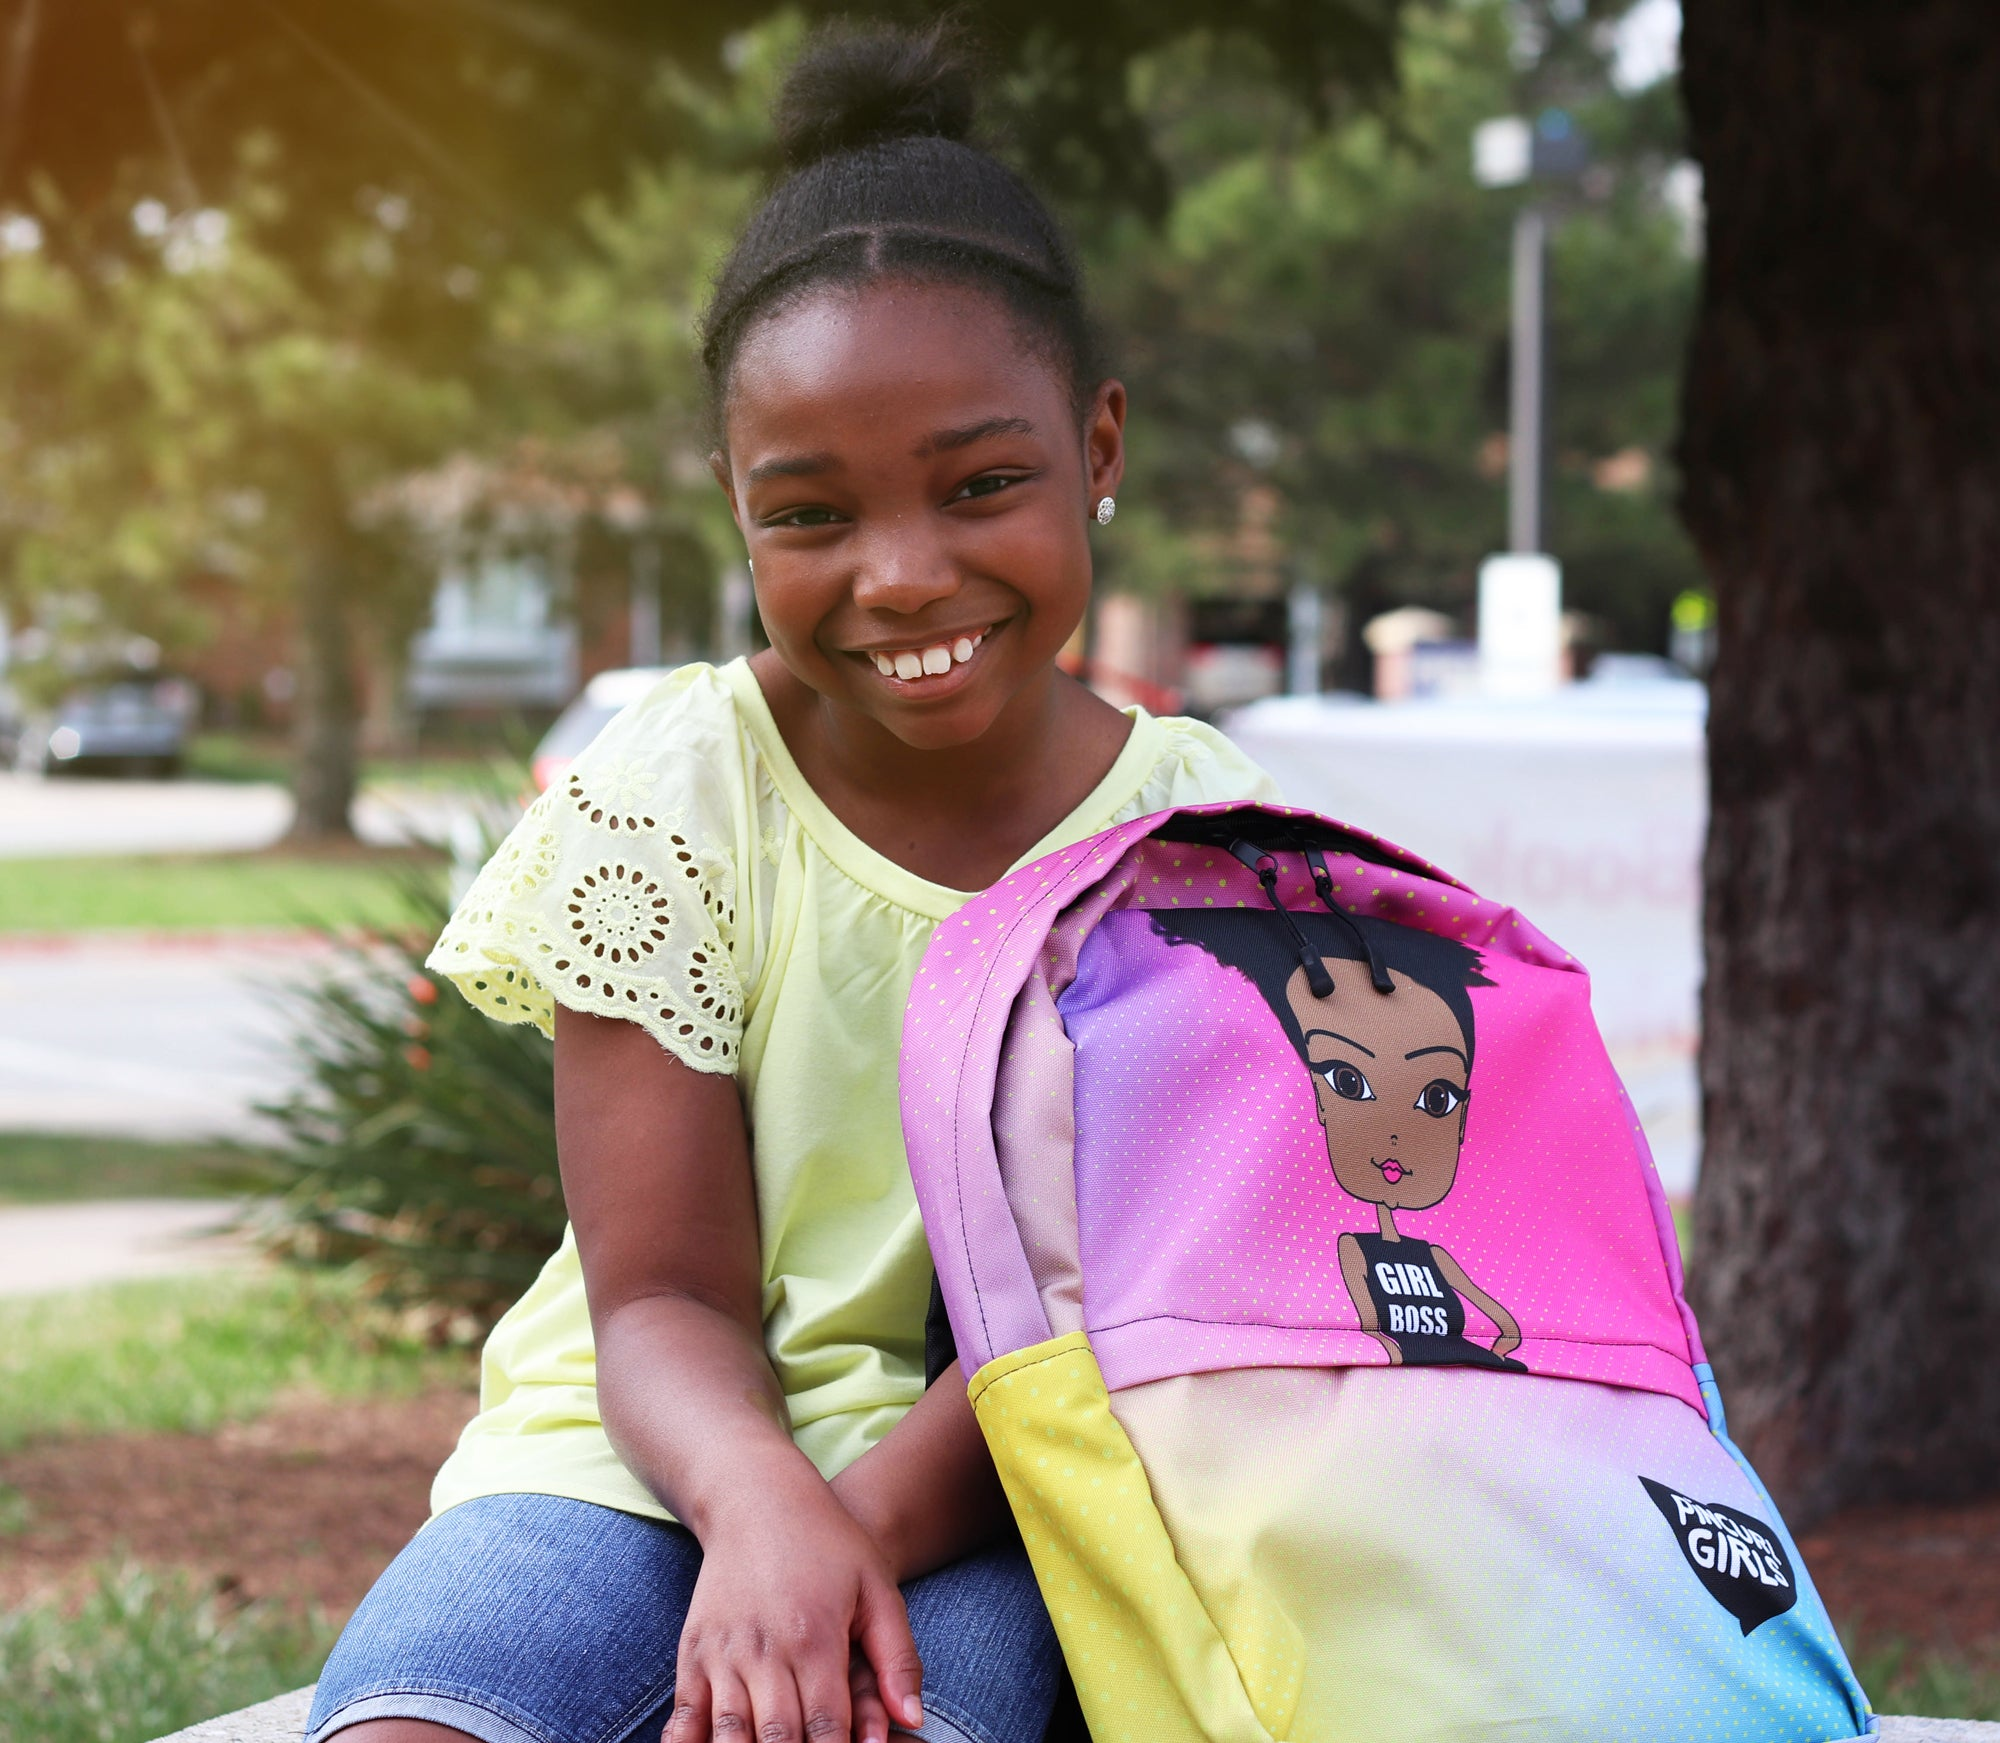 African American Backpack, Rainbow colors, GIRL BOSS,  Pincurl Girls - Pincurl Girls - Inspiring Girls to Love Themselves